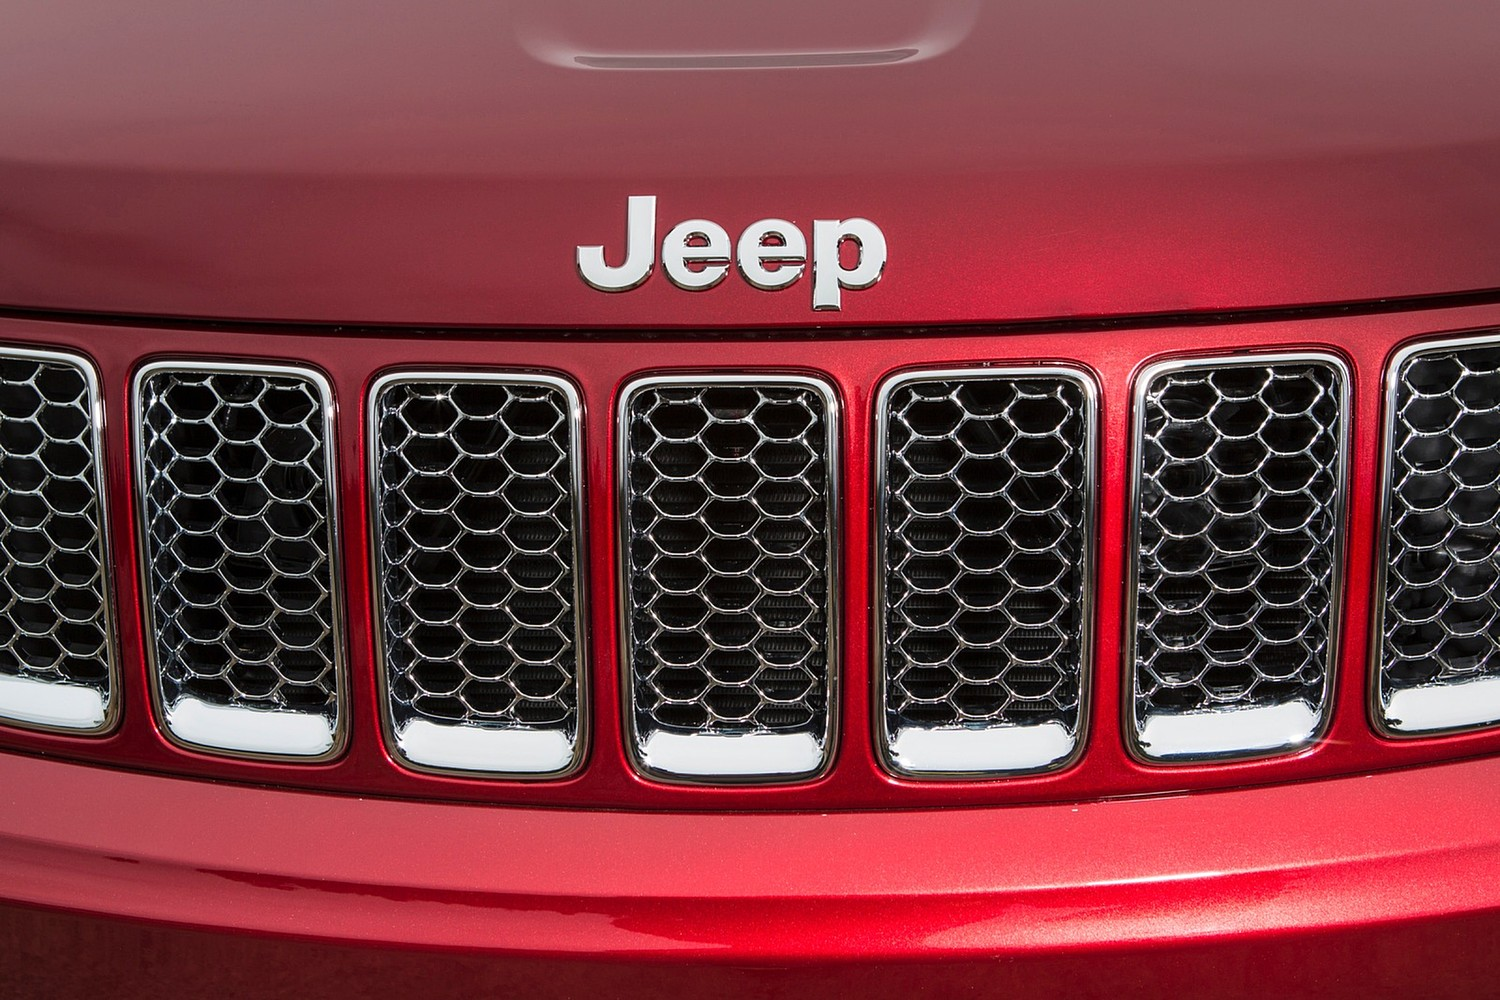 Jeep Grand Cherokee Summit 4dr SUV Front Badge (2015 model year shown)